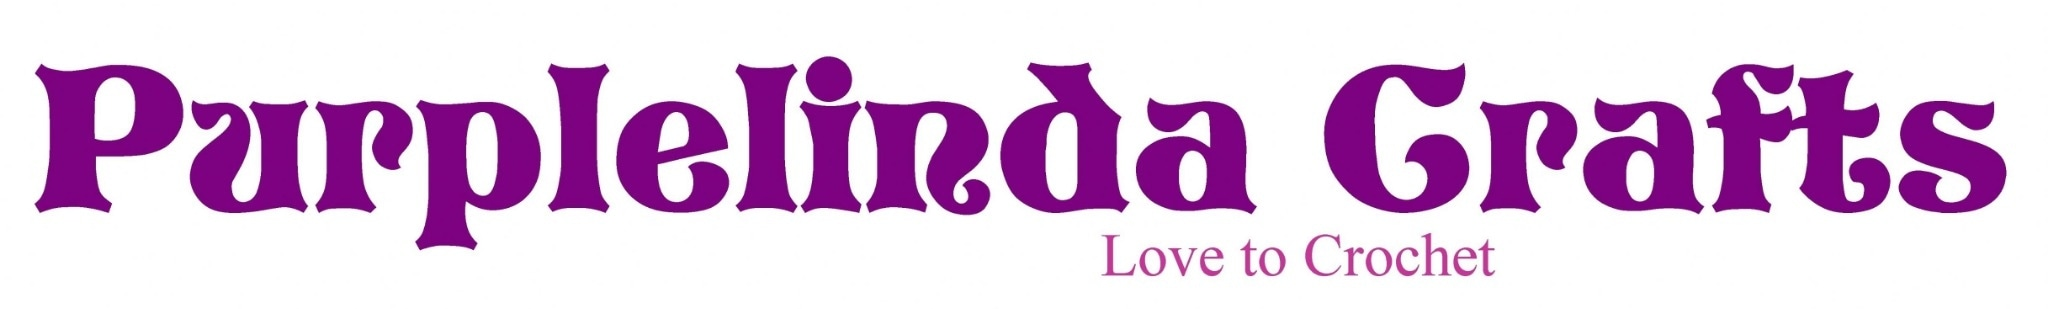 Purplelinda Crafts promo codes